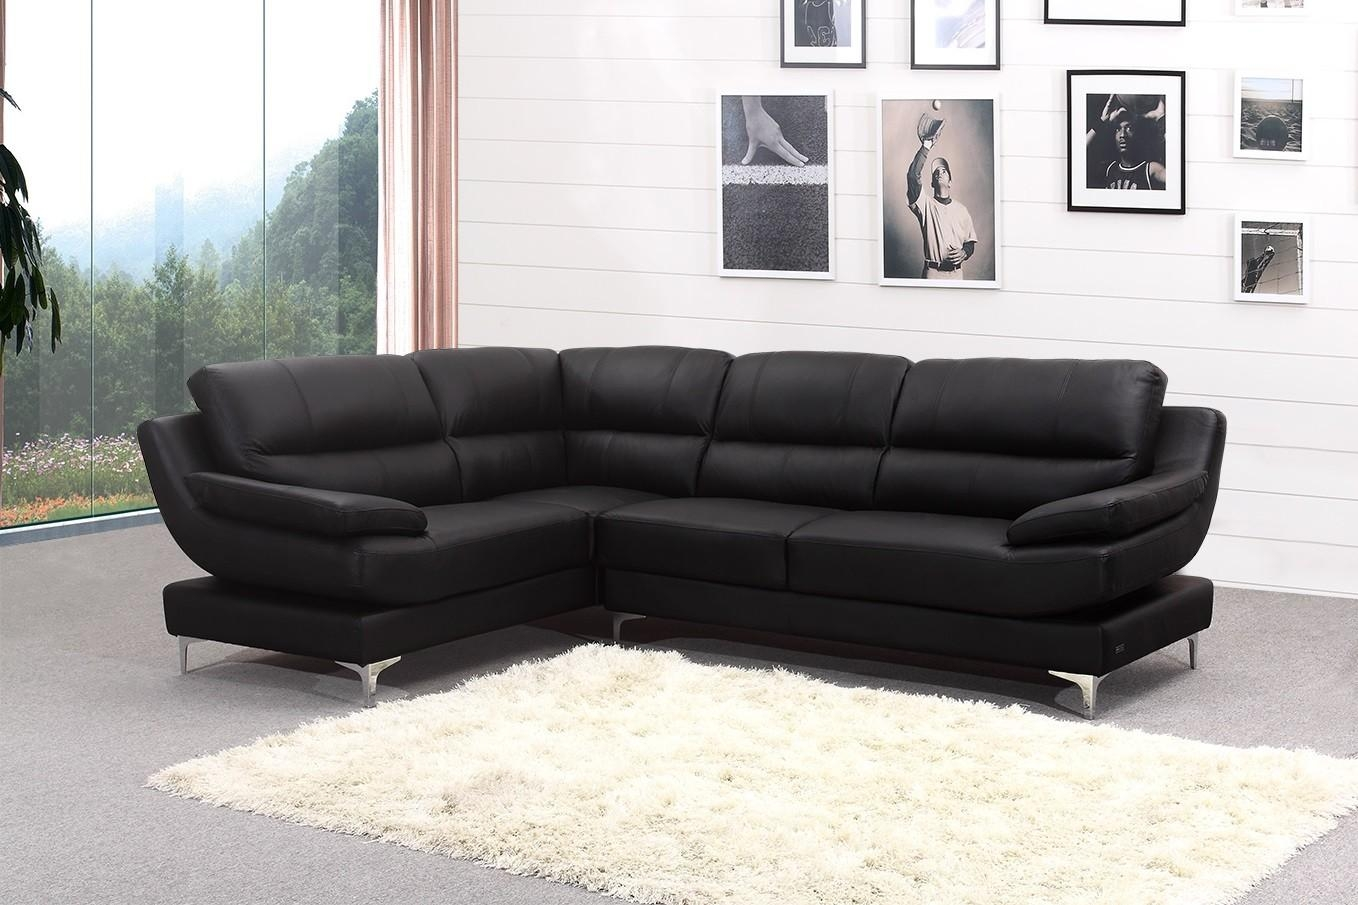 Modern Black Corner Sofa And Leather Corner Sofa Black Cosmo Sofas For Black Corner Sofas (Image 15 of 20)